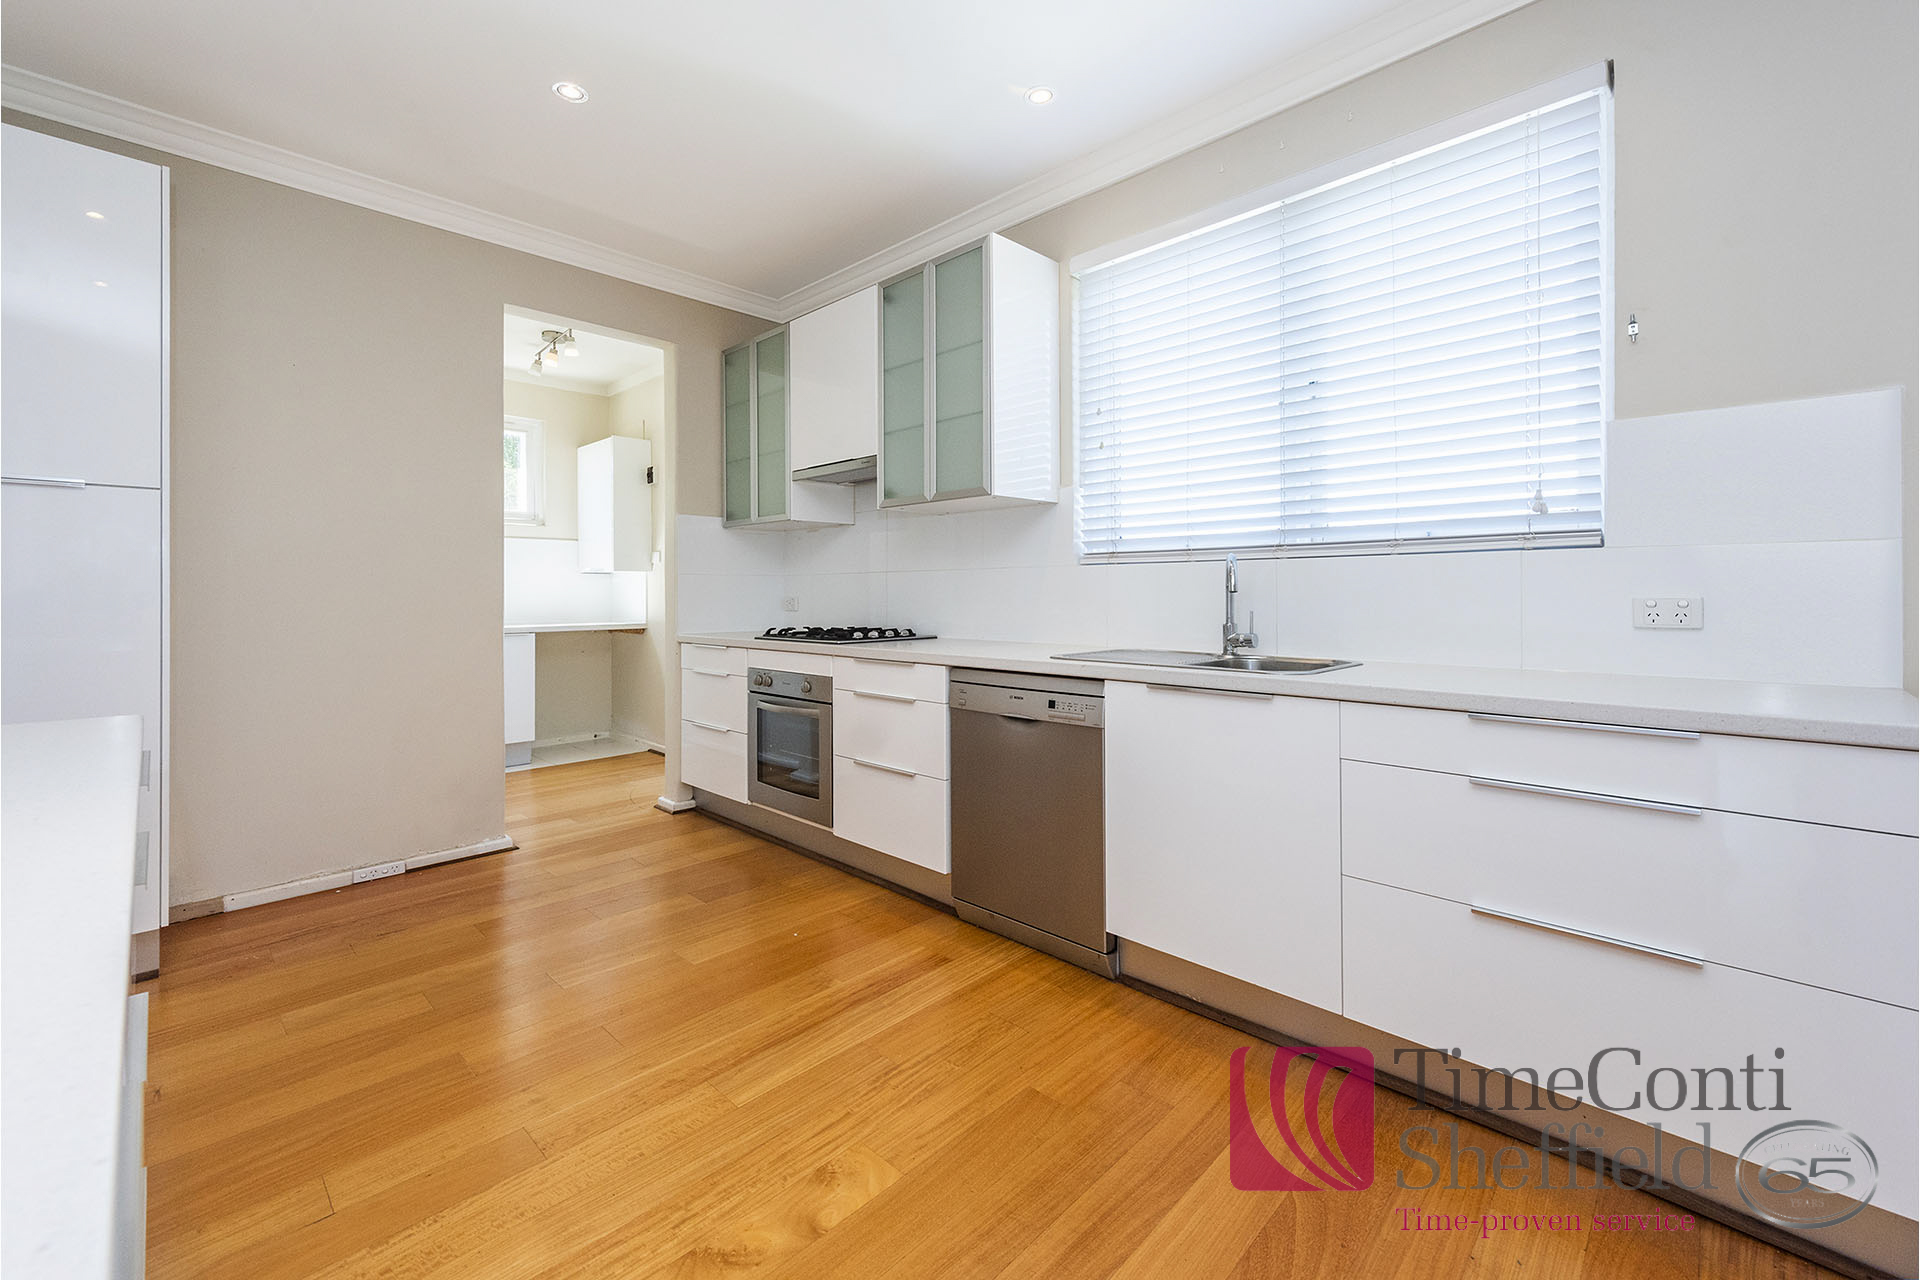 IN THE RIVER PRECINCT! ONE OF SIX SPACIOUS APARTMENTS!